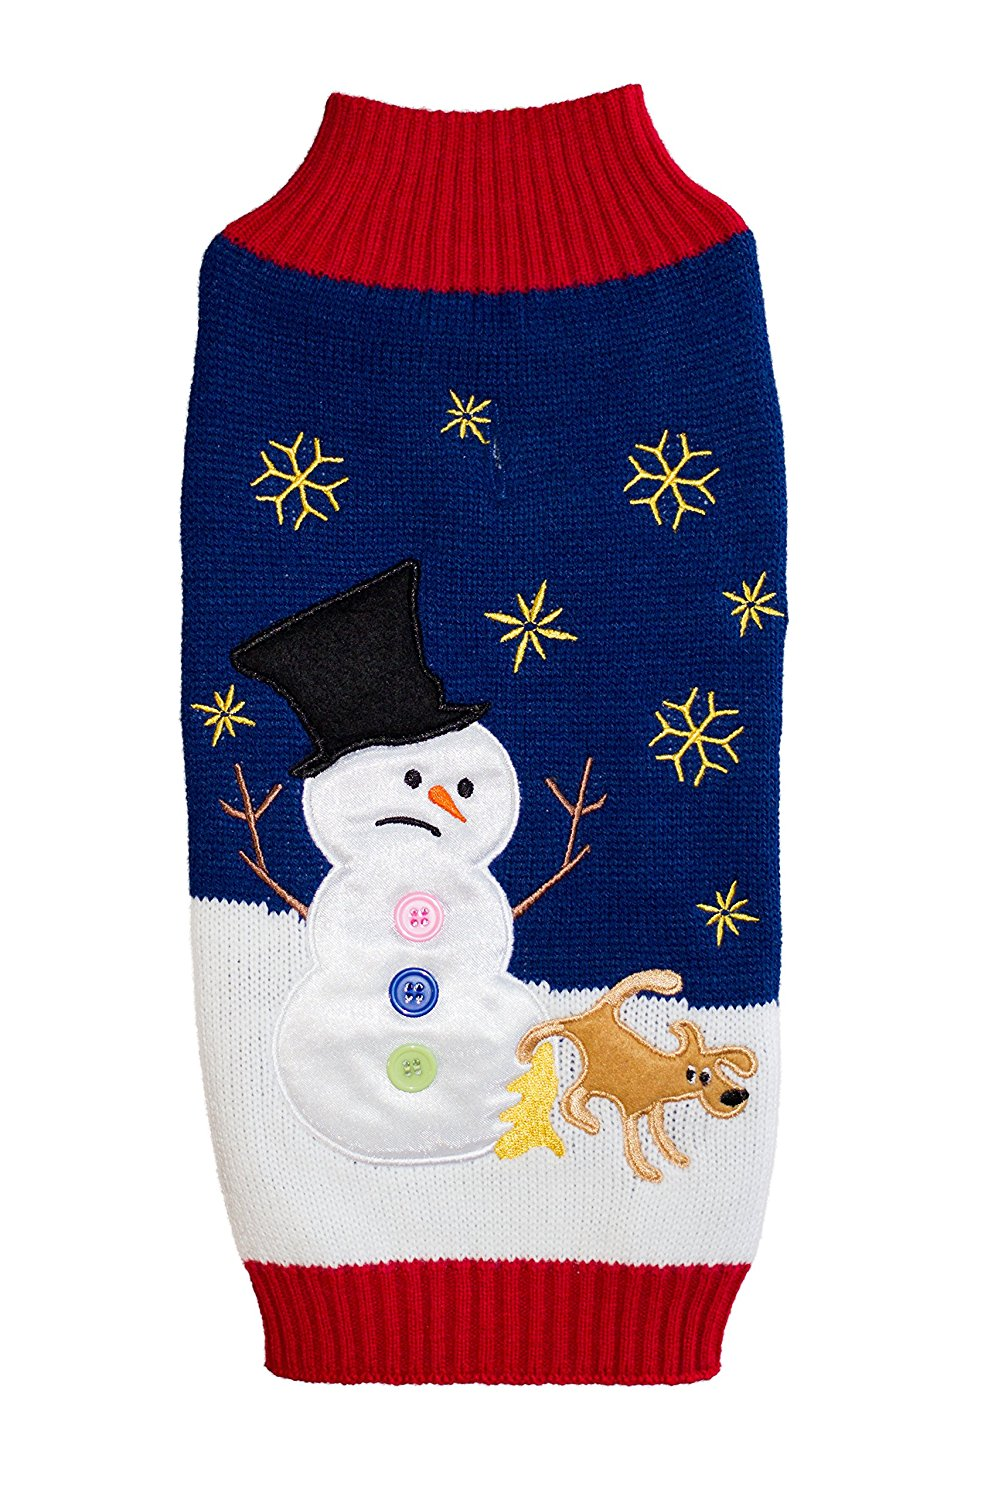 Peeing Reindeer Ugly Christmas Sweater for Dogs